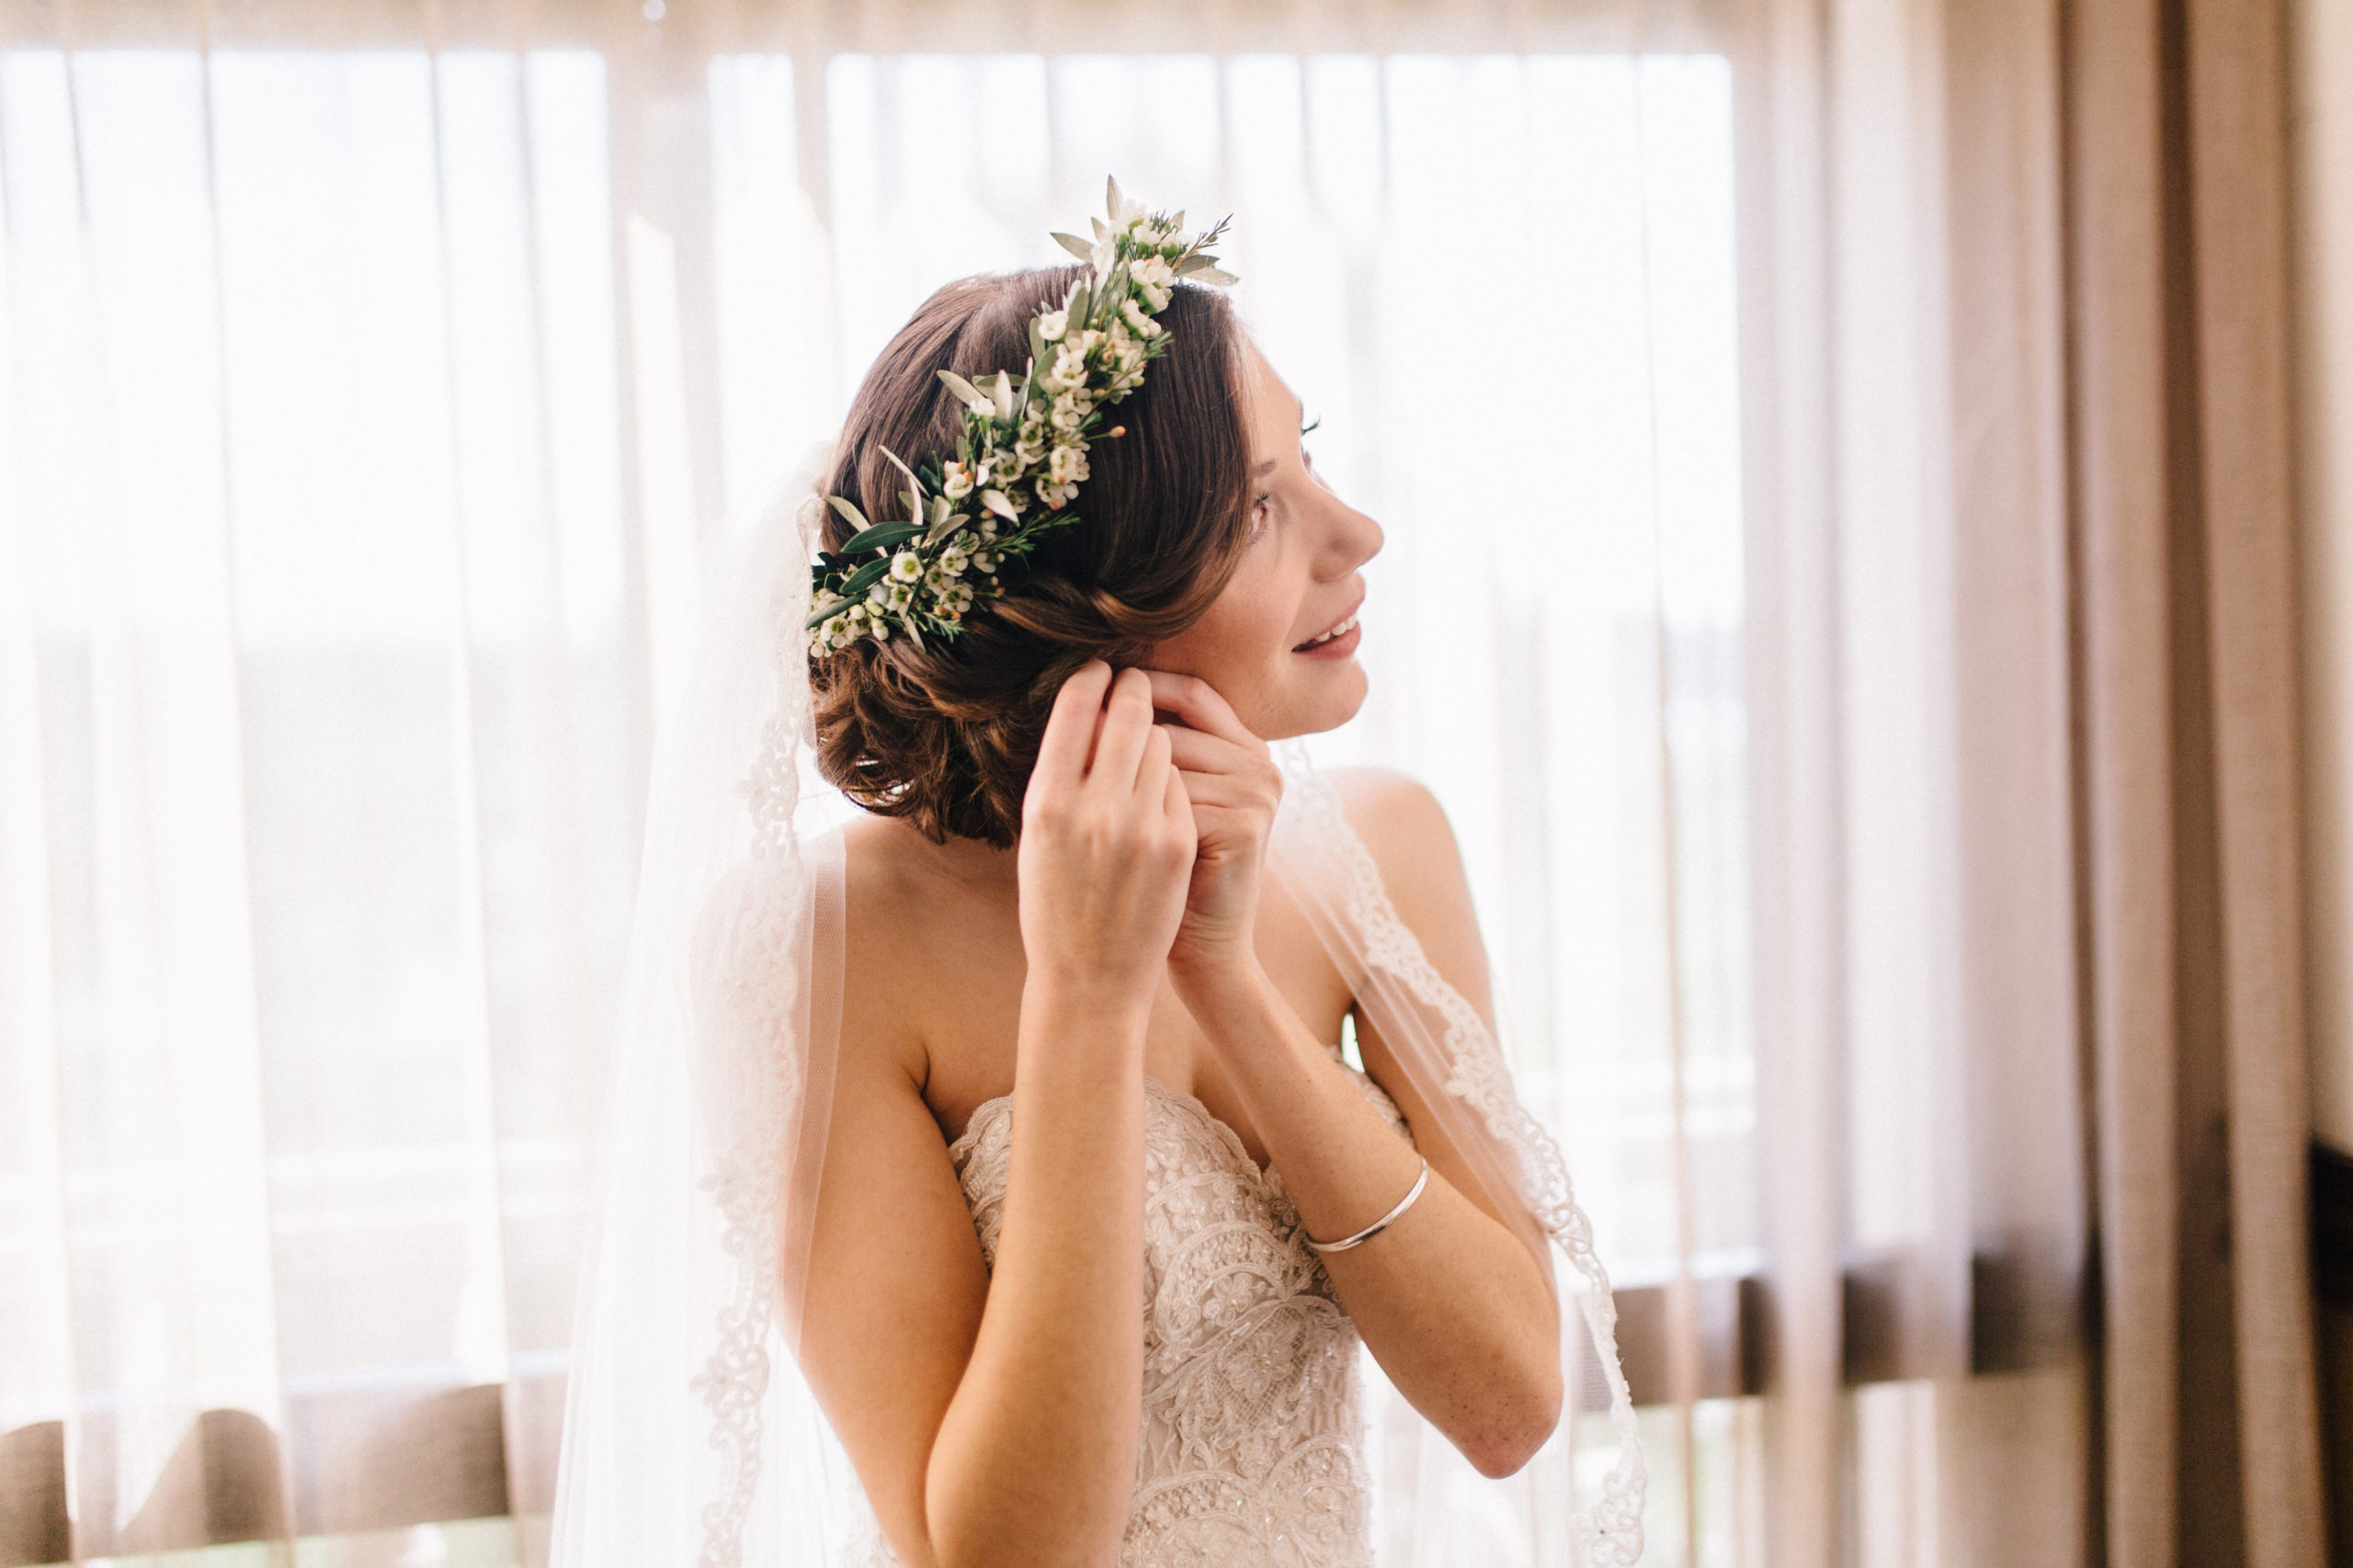 Bride with stylish updo hairstyle putting earrings in